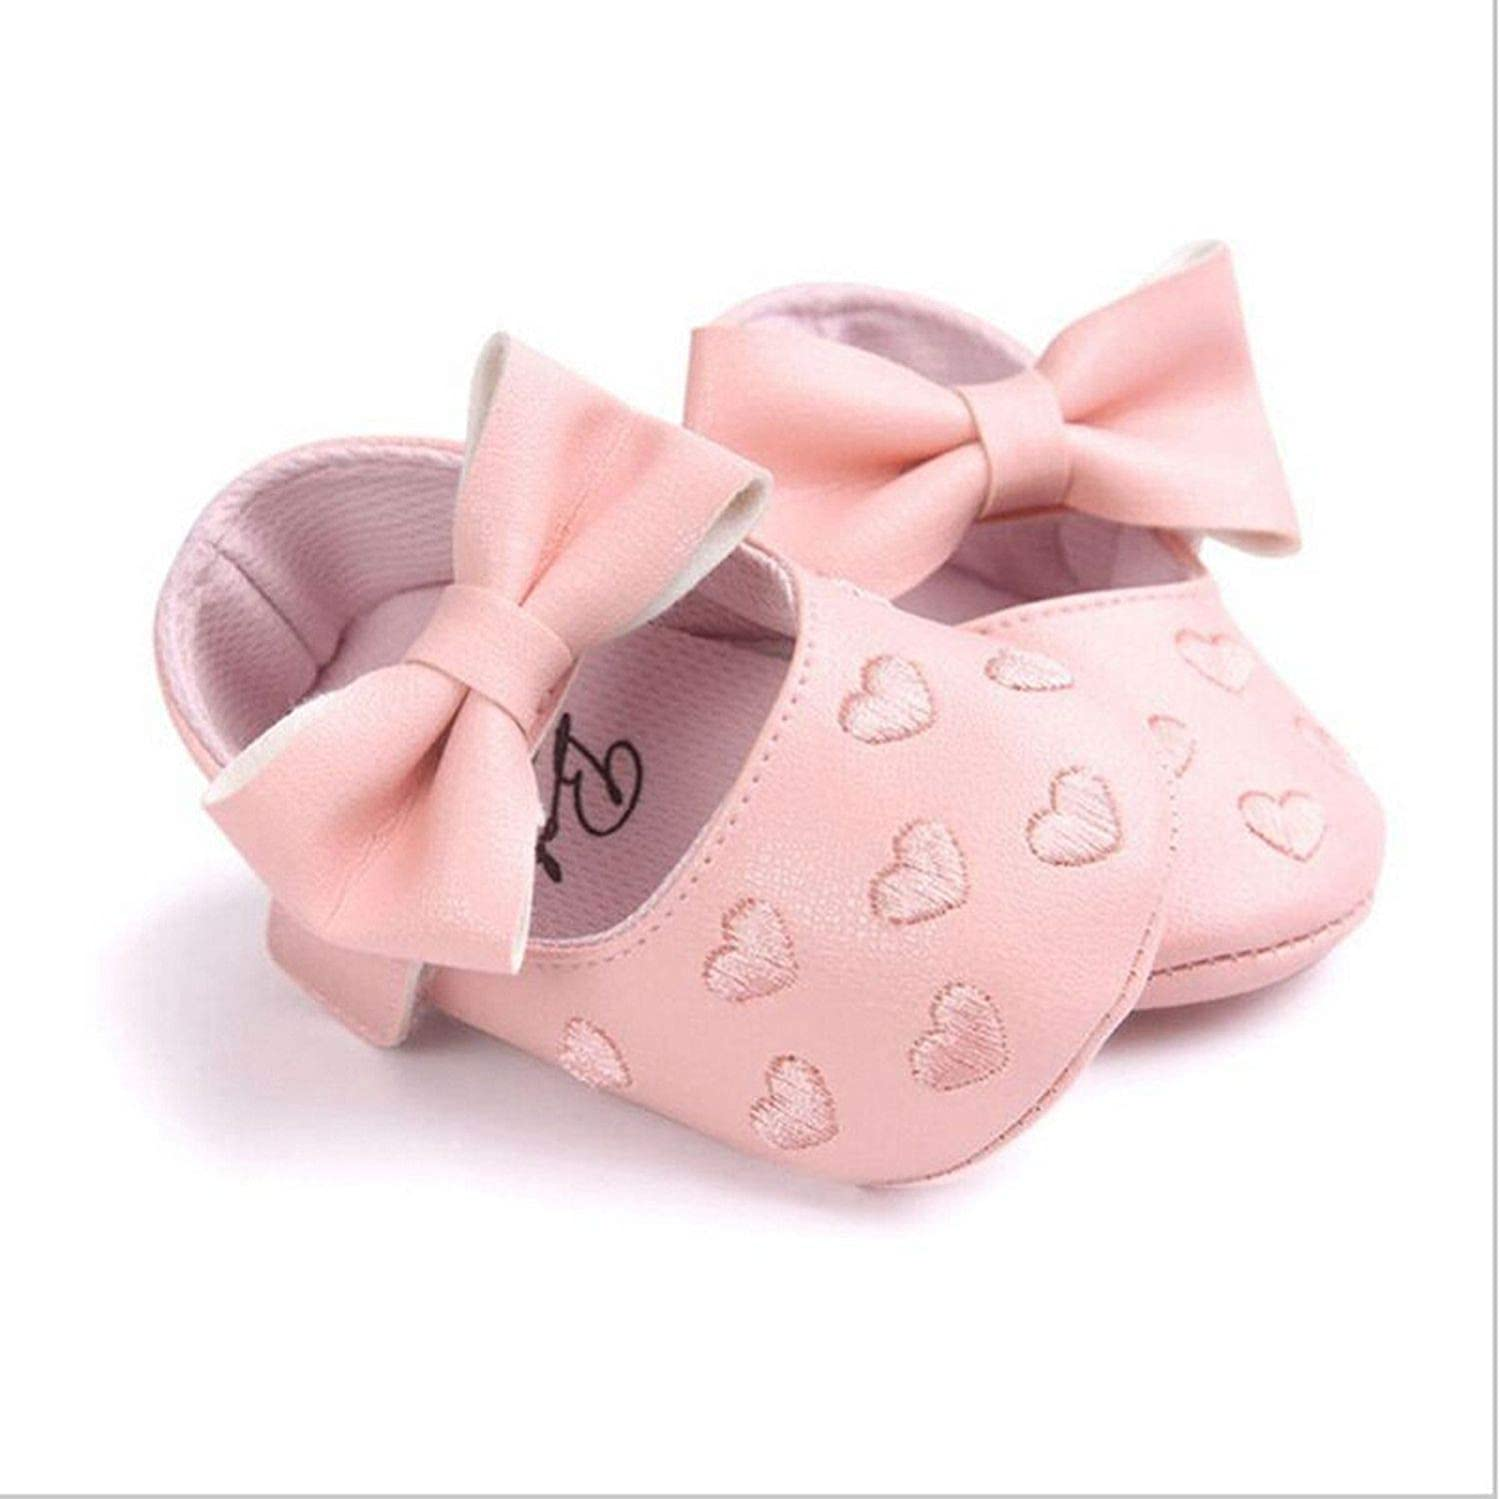 Kinggolder Fashion Newborn Baby Boy Girl Pu Moccasins Soft Ballet Shoes Pink